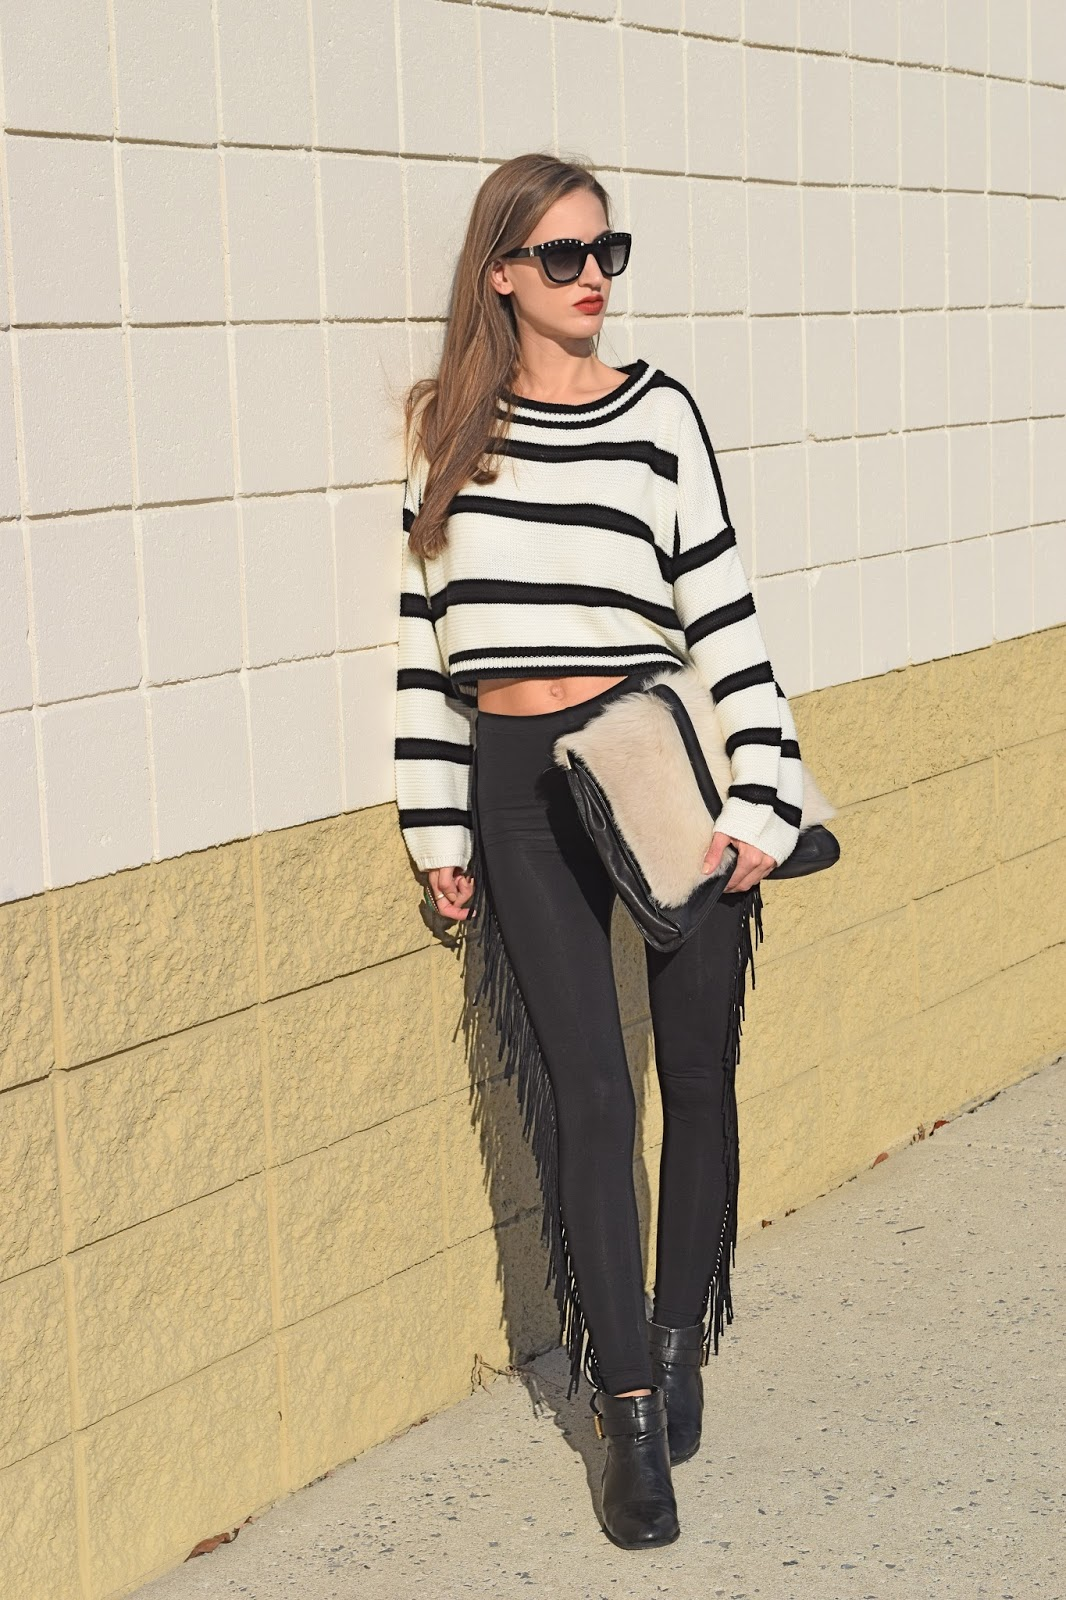 Wearing Yoins black and white striped crop top sweater, Top Shop black fringe leggings, Valentino Rockstud sunglasses